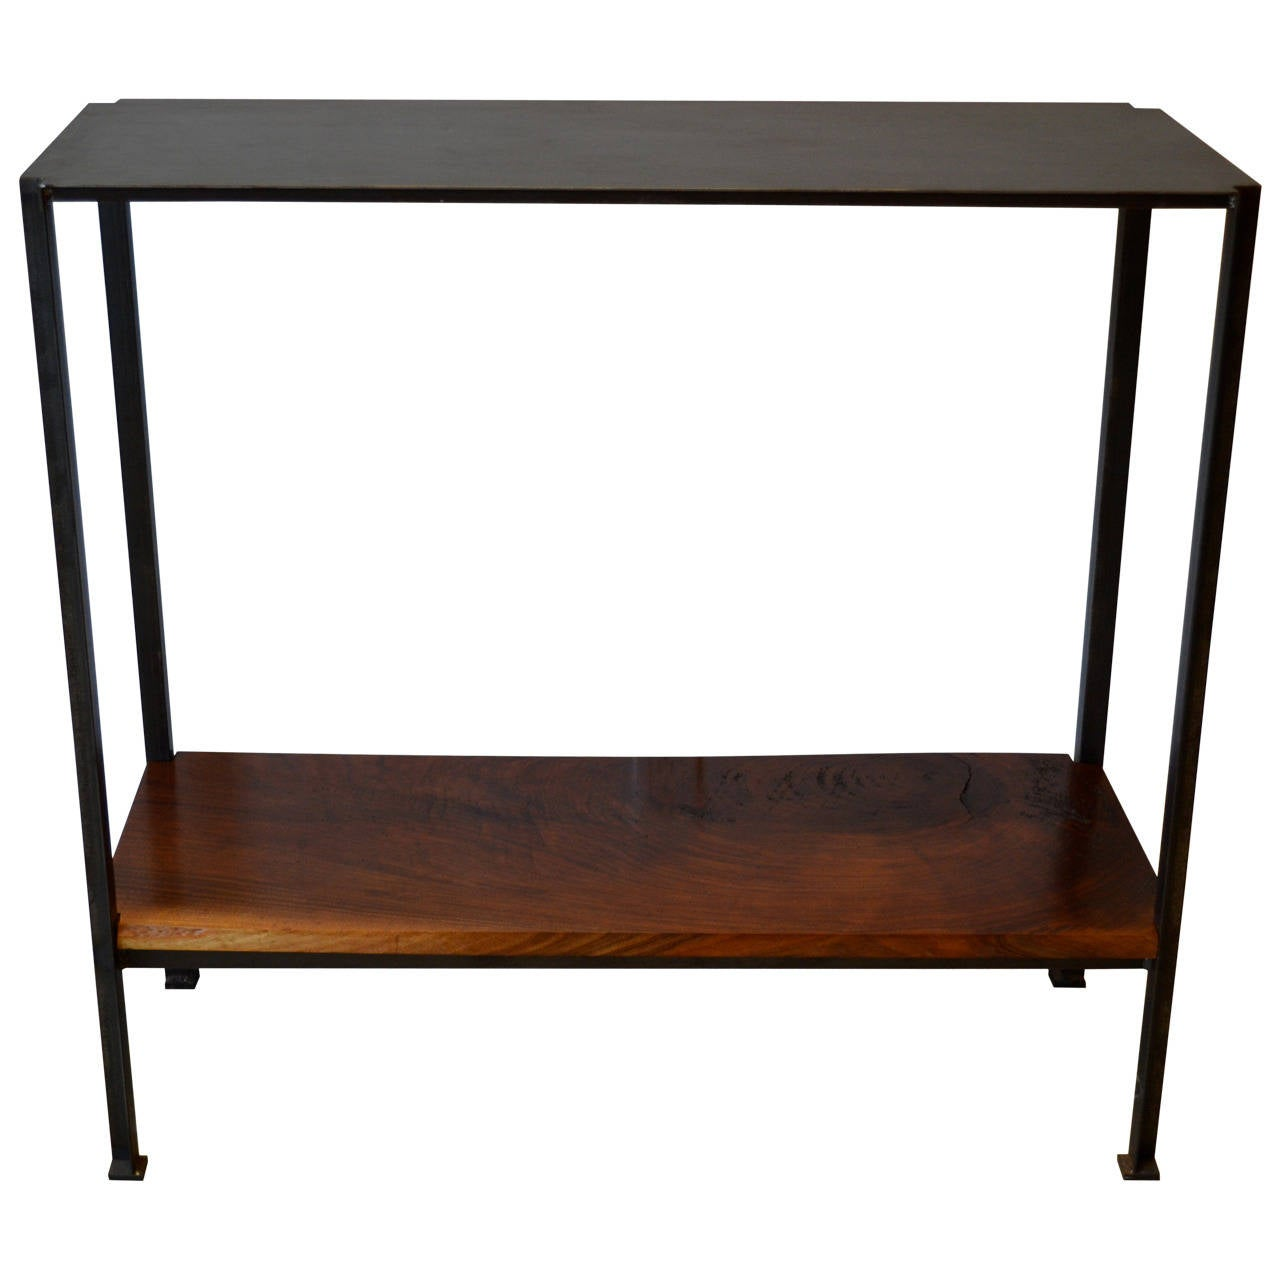 Industrail Metal Foyer Table With Walnut Shelf At 1stdibs